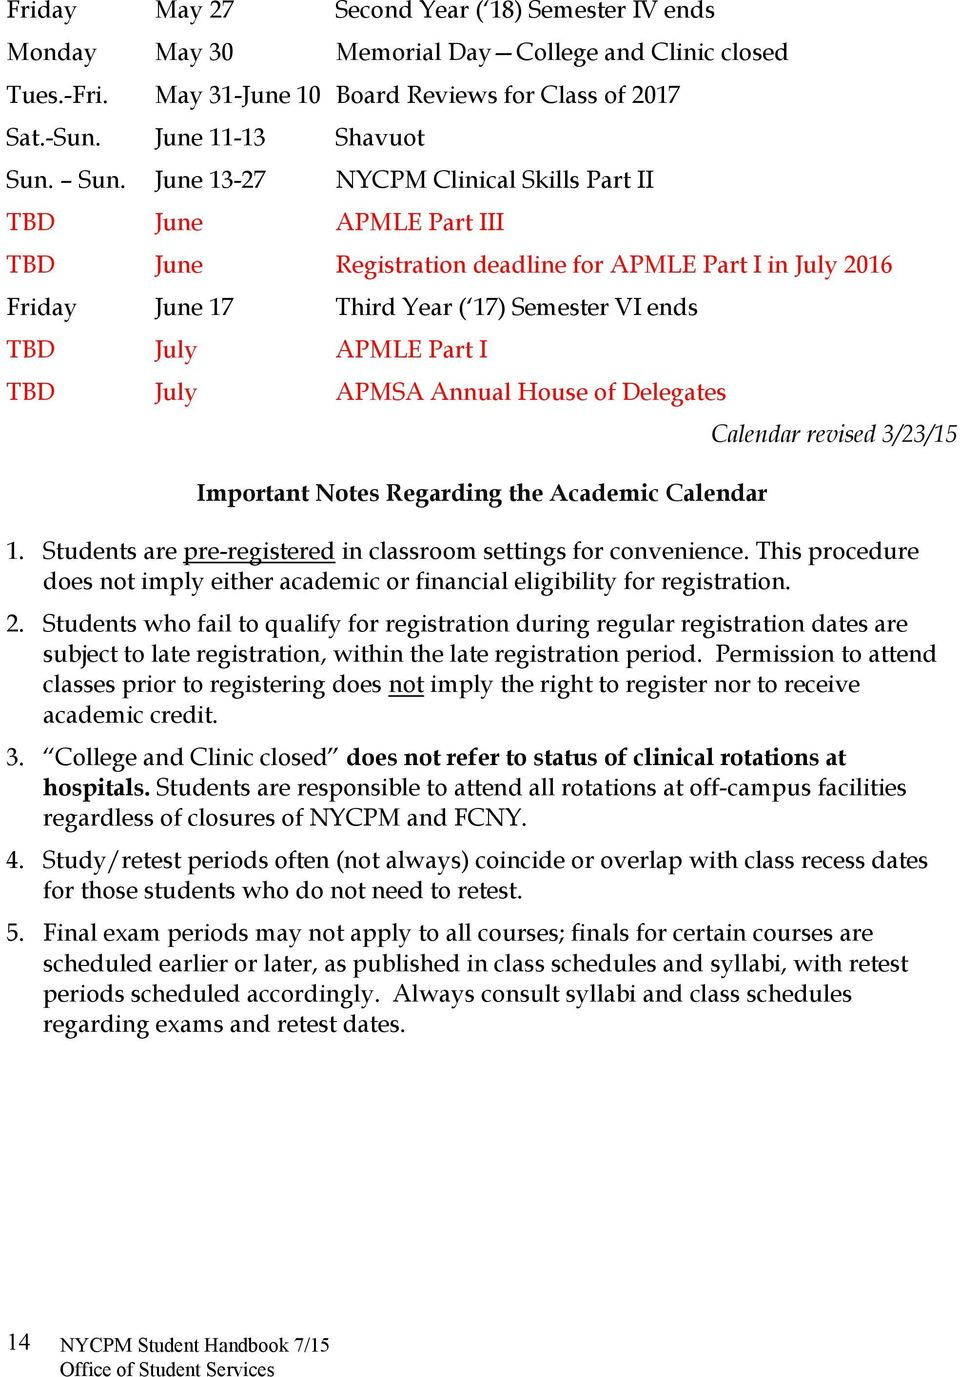 I TBD July APMSA Annual House of Delegates Important Notes Regarding the Academic Calendar Calendar revised 3/23/15 1. Students are pre-registered in classroom settings for convenience.